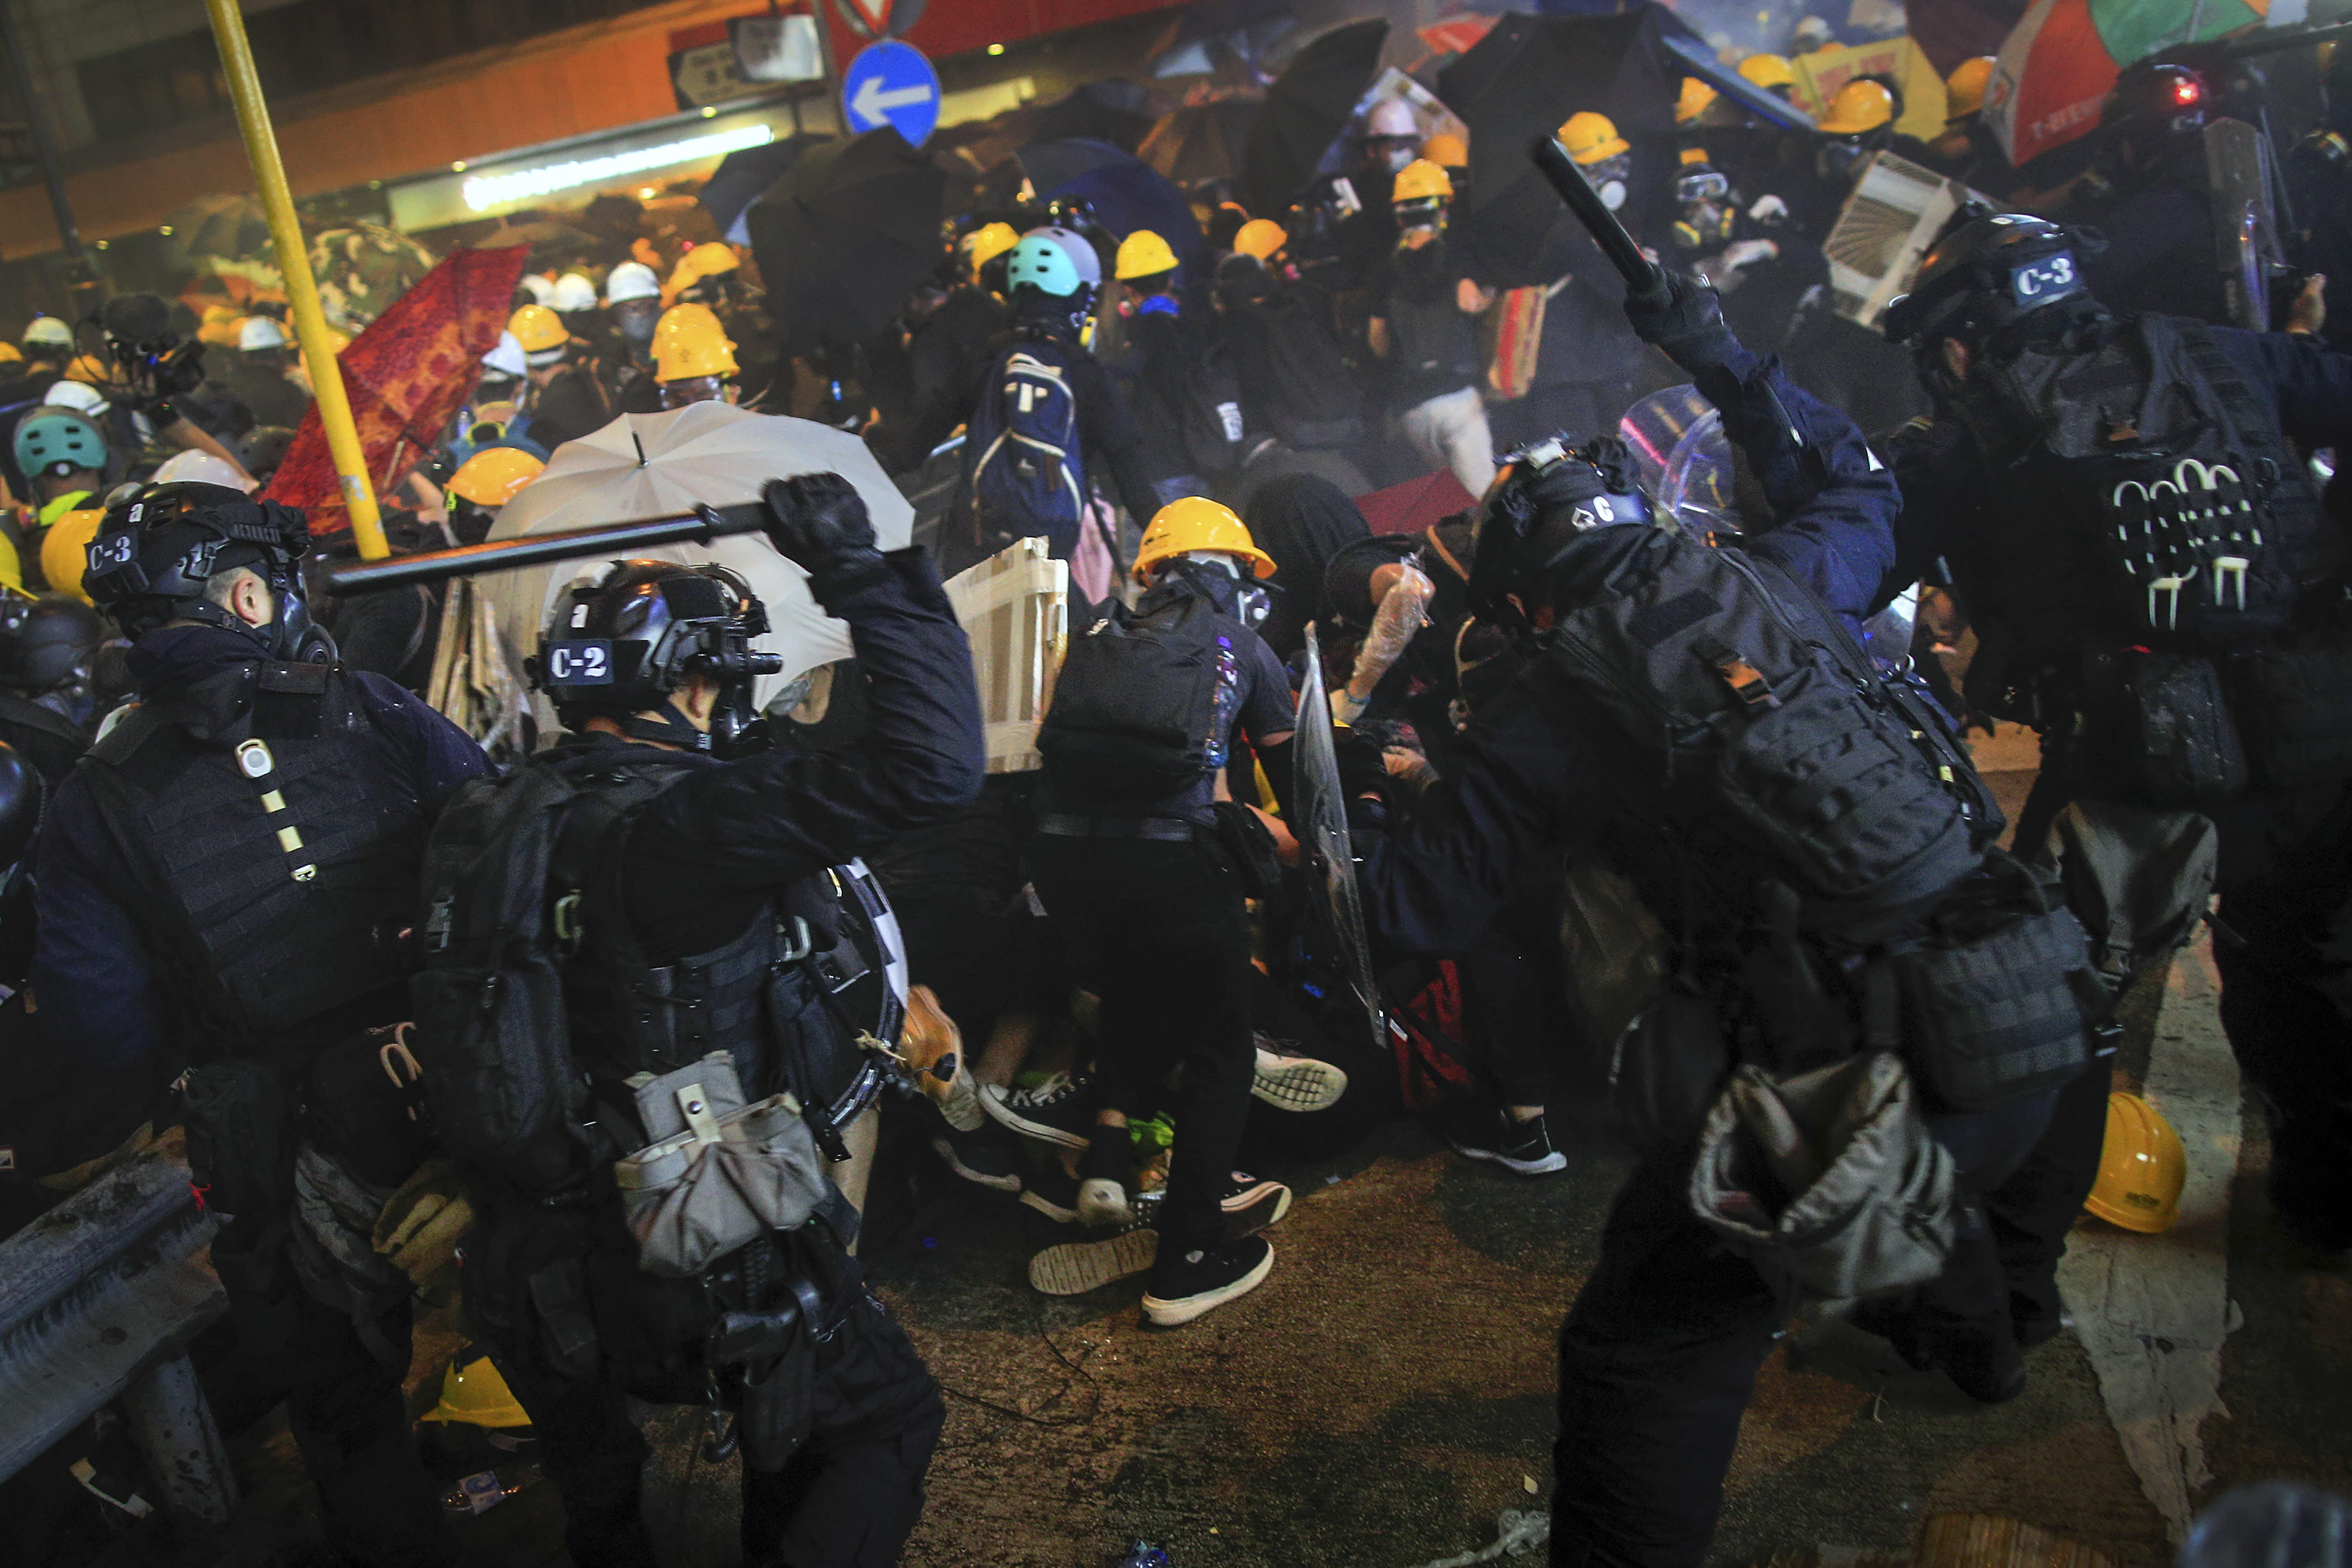 Policemen use batons charge on protesters during a protest in Hong Kong, Sunday, July 28, 2019. Police fired tear gas at protesters in Hong Kong on Sunday for the second night in a row in another escalation of weeks-long pro-democracy protests in the semi-autonomous Chinese territory. (Jeff Cheng/HK01 via AP)